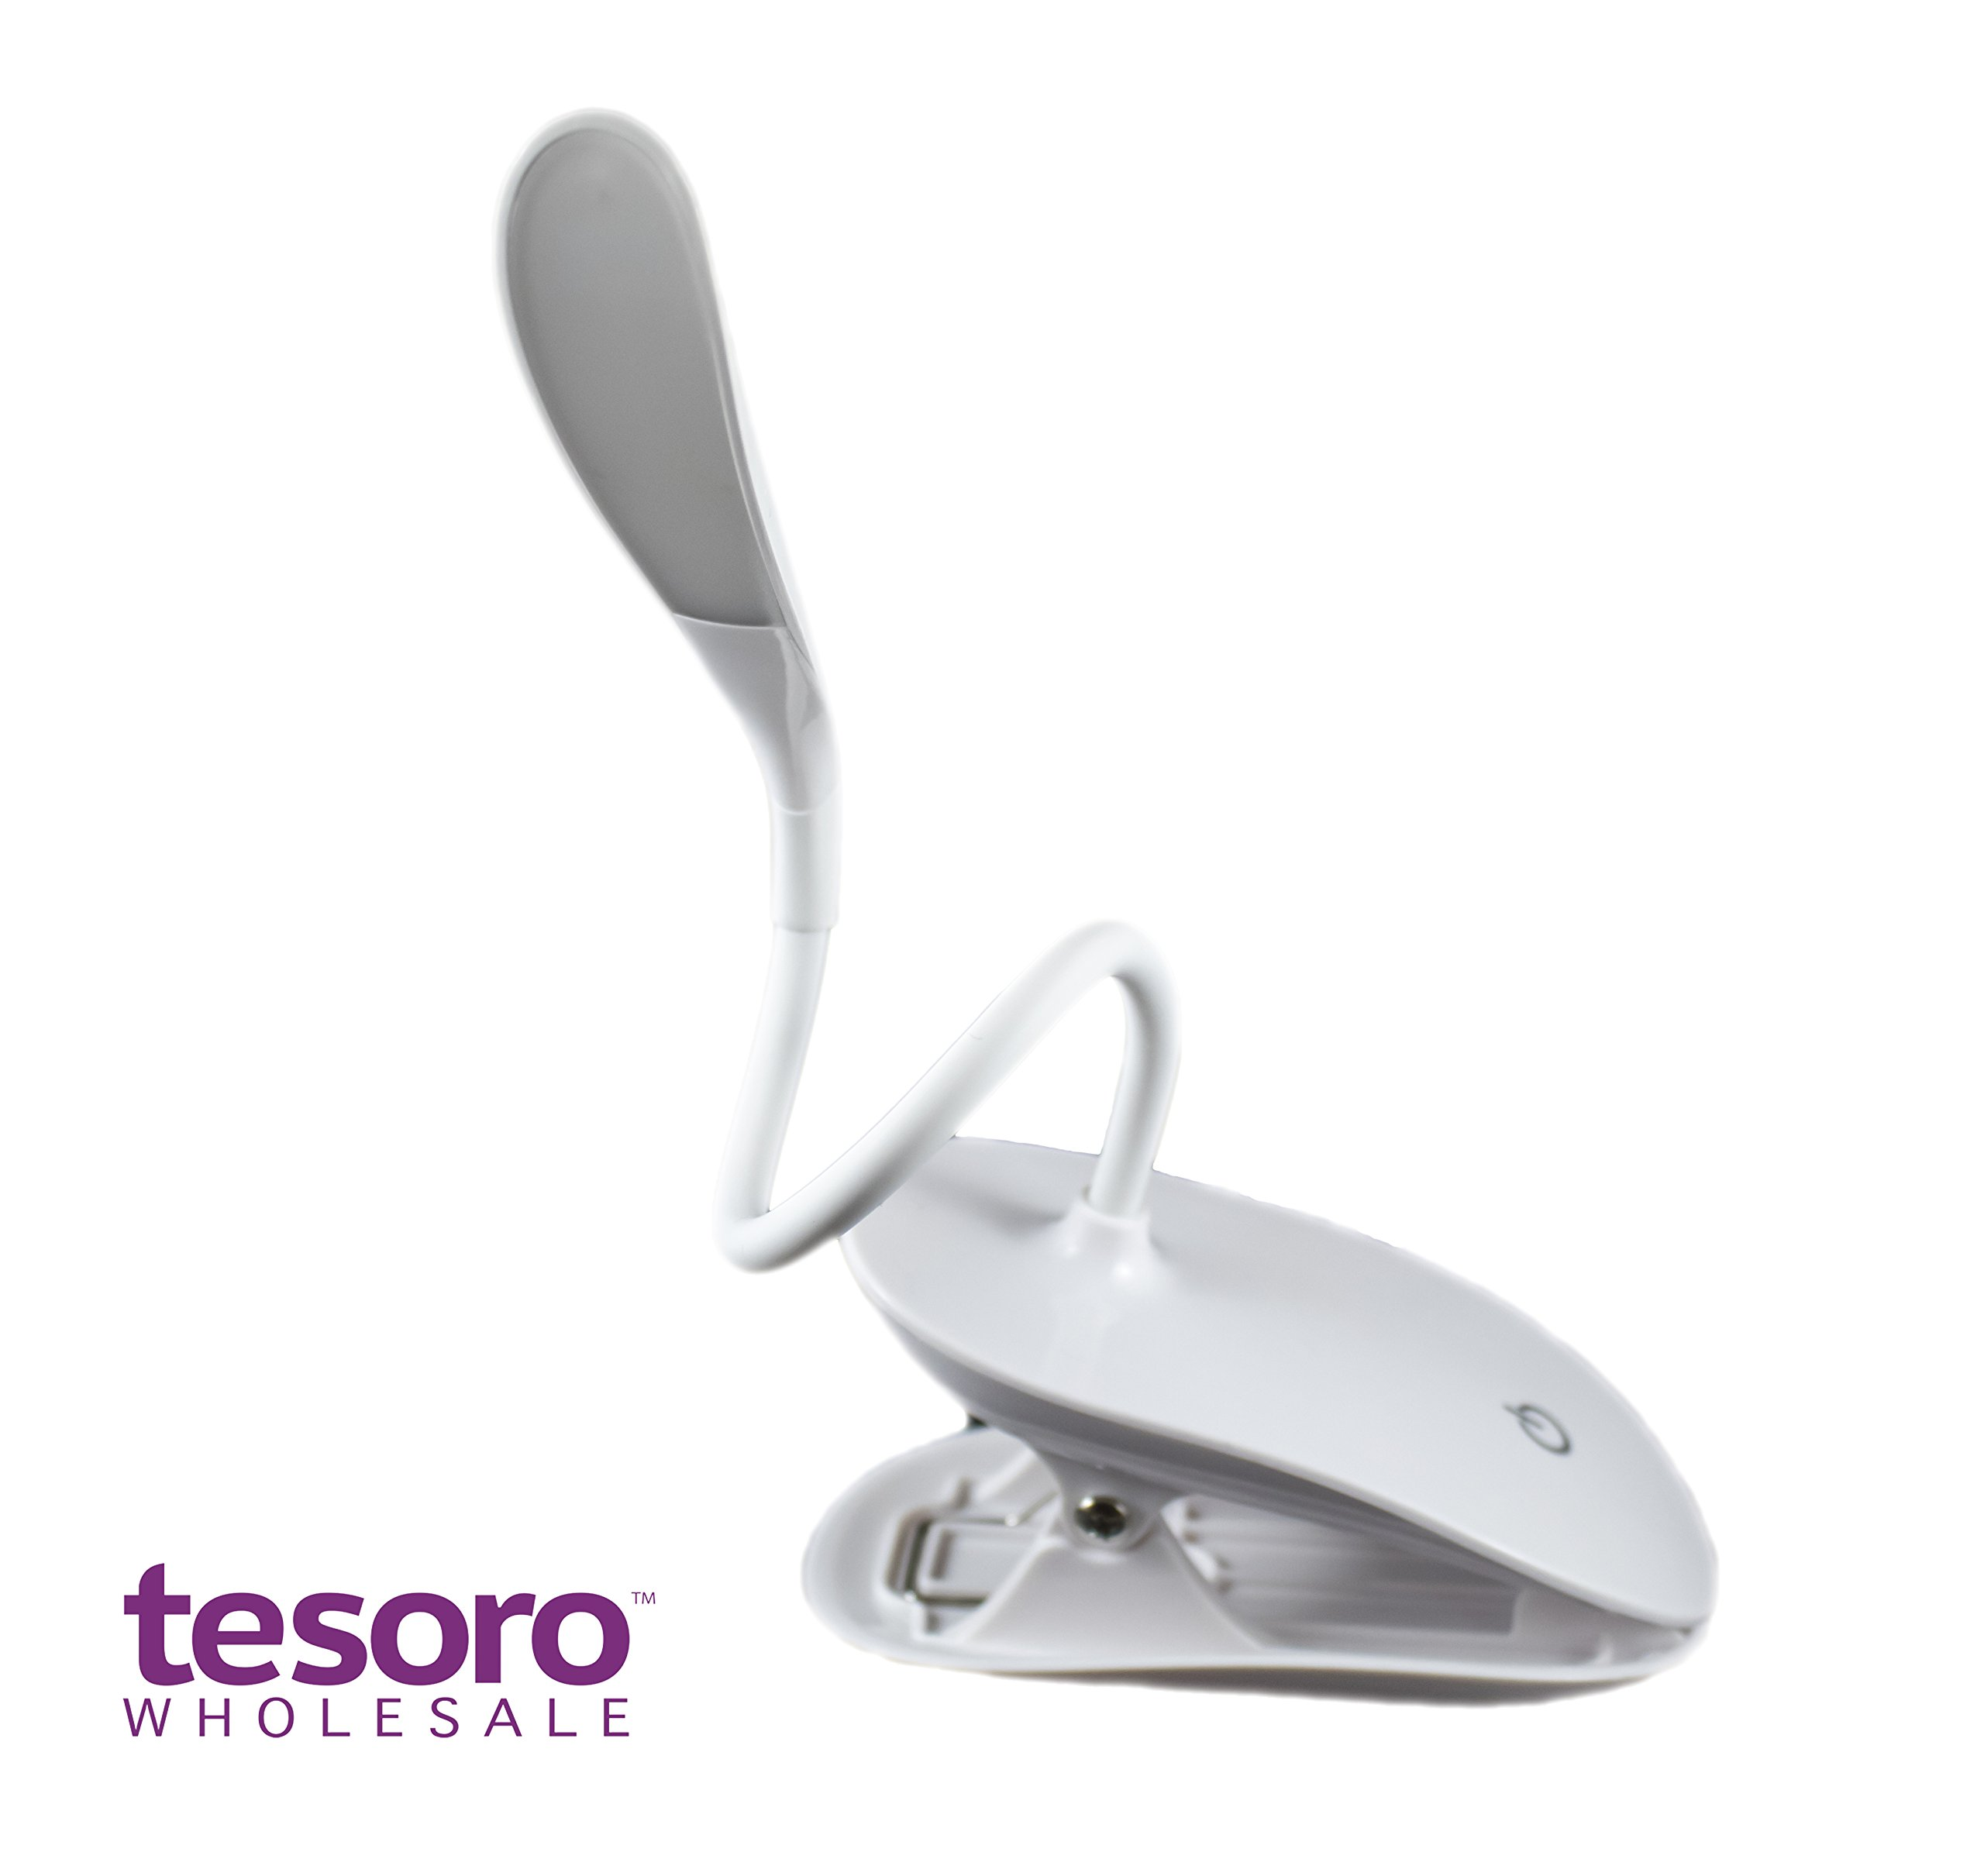 Clip-on Book Light Reading Lamp, Portable Table Light, Adjustable Led Clip Light, Anti Glare Reading Light, USB Rechargeable Computer Desk Lamp, White Daylight Bed Light. by Tesoro Wholesale™ (Image #3)